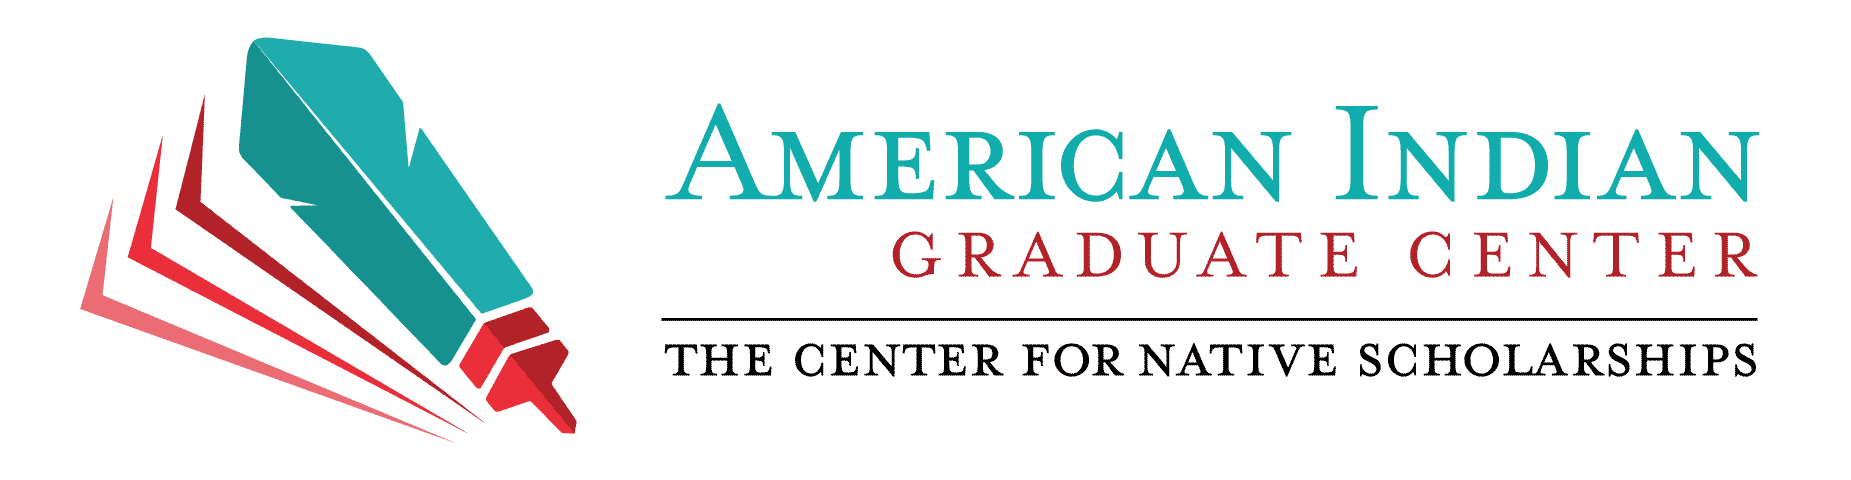 Scholarships and Fellowships | American Indian Graduate Center